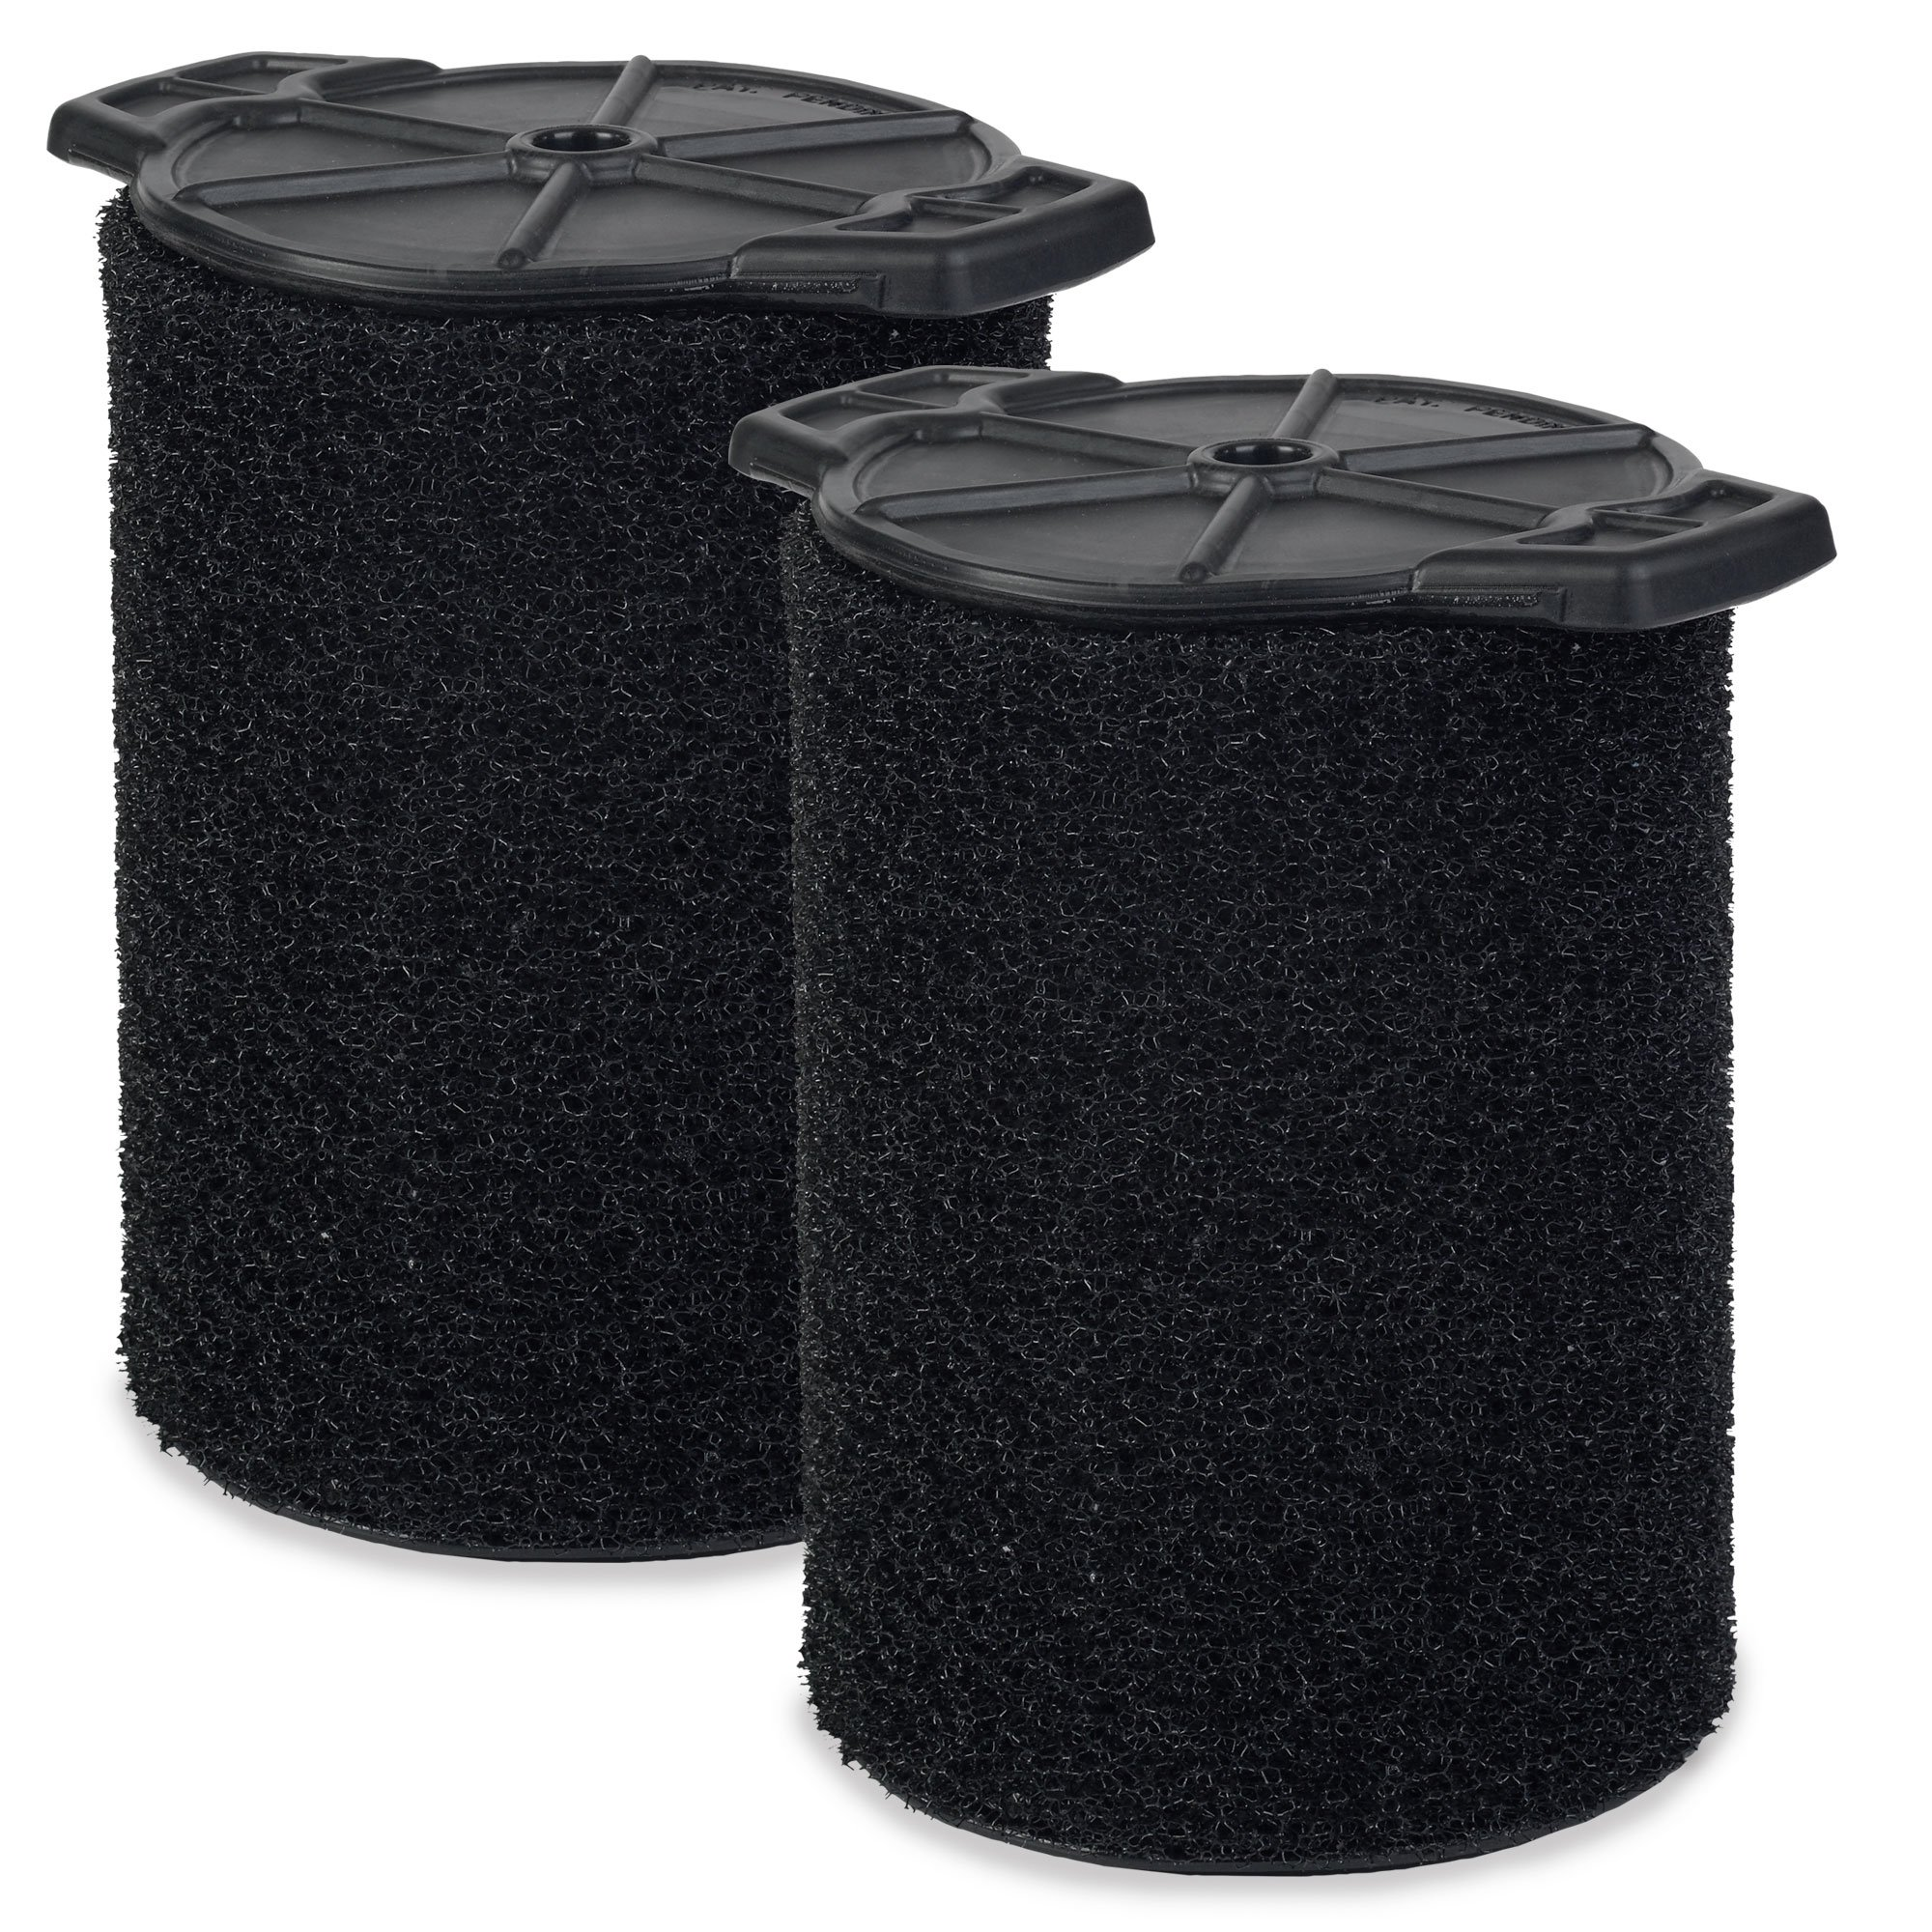 WORKSHOP Wet Vac Filters WS24200F2 Foam Filter For Wet Dry Vacuum Cleaner (2 Pack Wet Application Foam Filters) For WORKSHOP 5-Gallon To 16-Gallon Shop Vacuum Cleaners